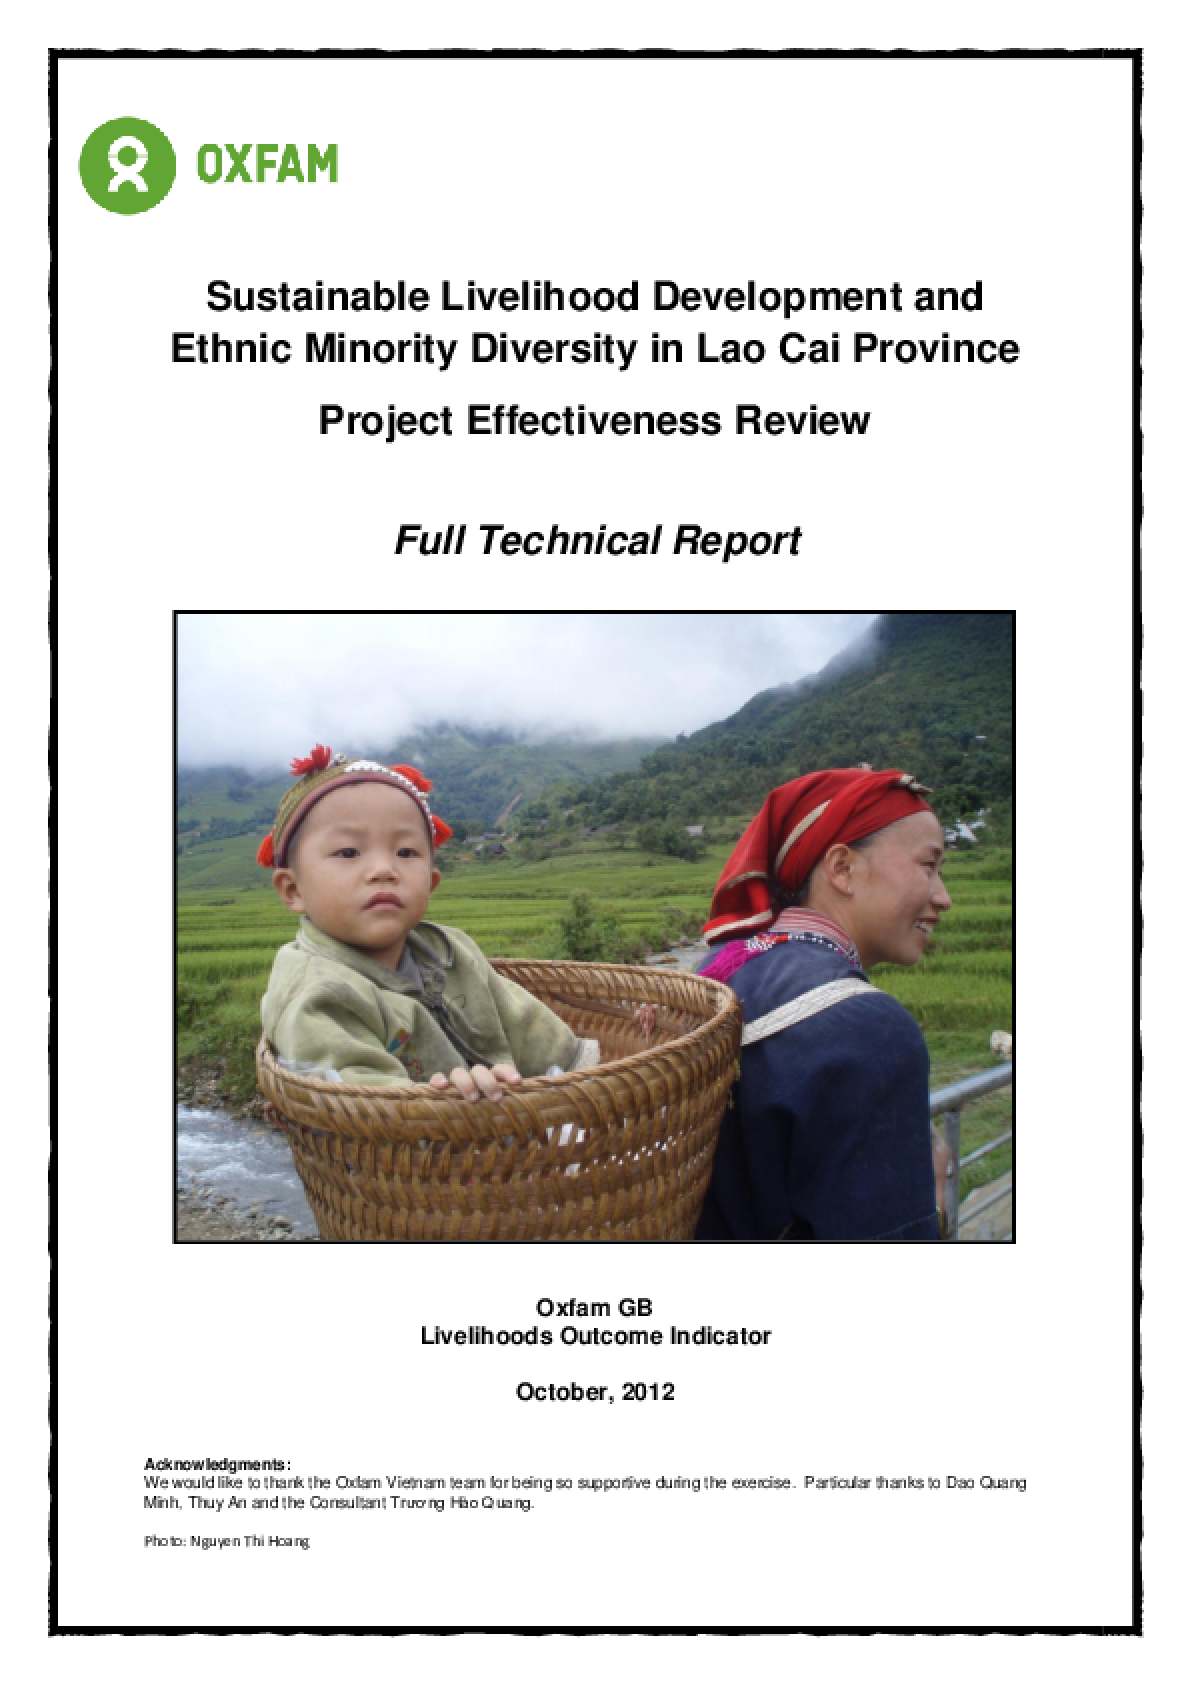 Effectiveness Review: Sustainable Livelihood Development and Ethnic Minority Diversity in Lao Cai Province, Viet Nam